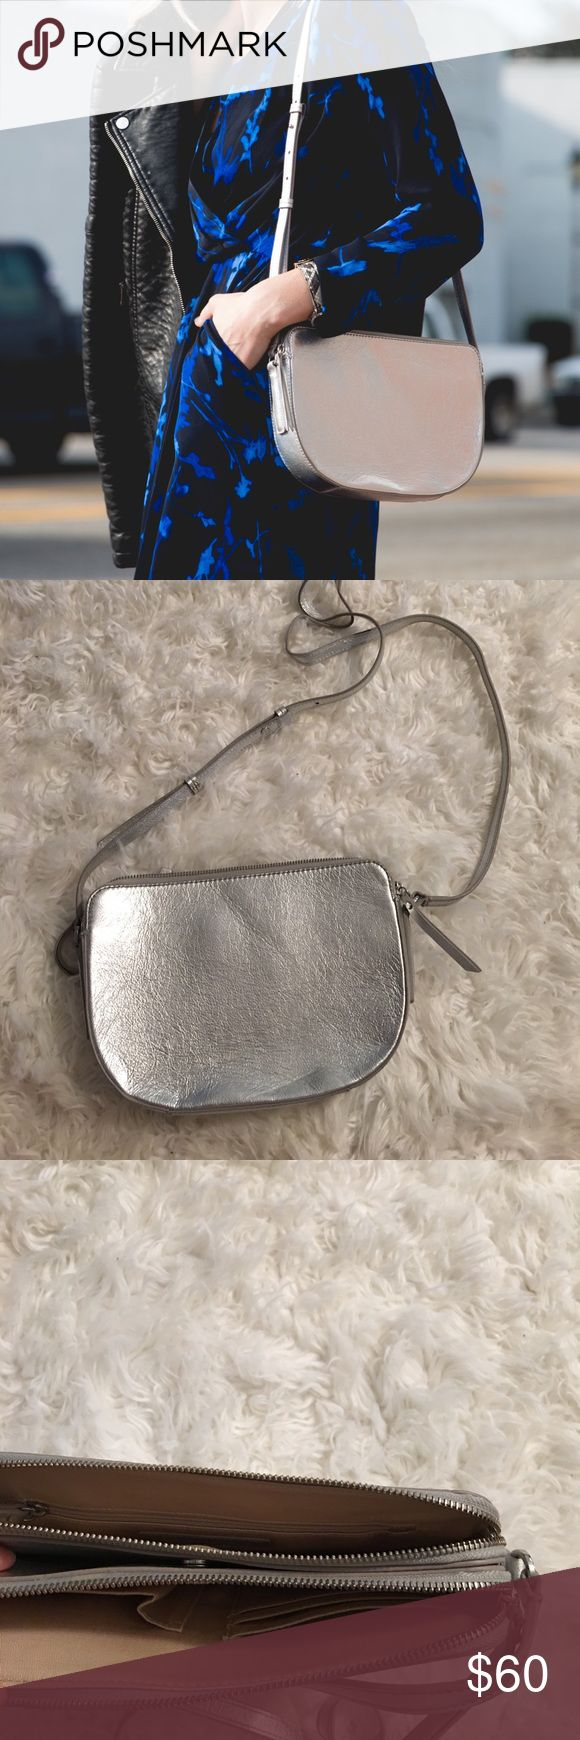 Banana Republic silver half moon cross-body Like new (worn once for a photoshoot) Banana Republic silver half moon cross-body bag with 6 pockets, credit card pockets and a phone pocket. Banana Republic Bags Crossbody Bags